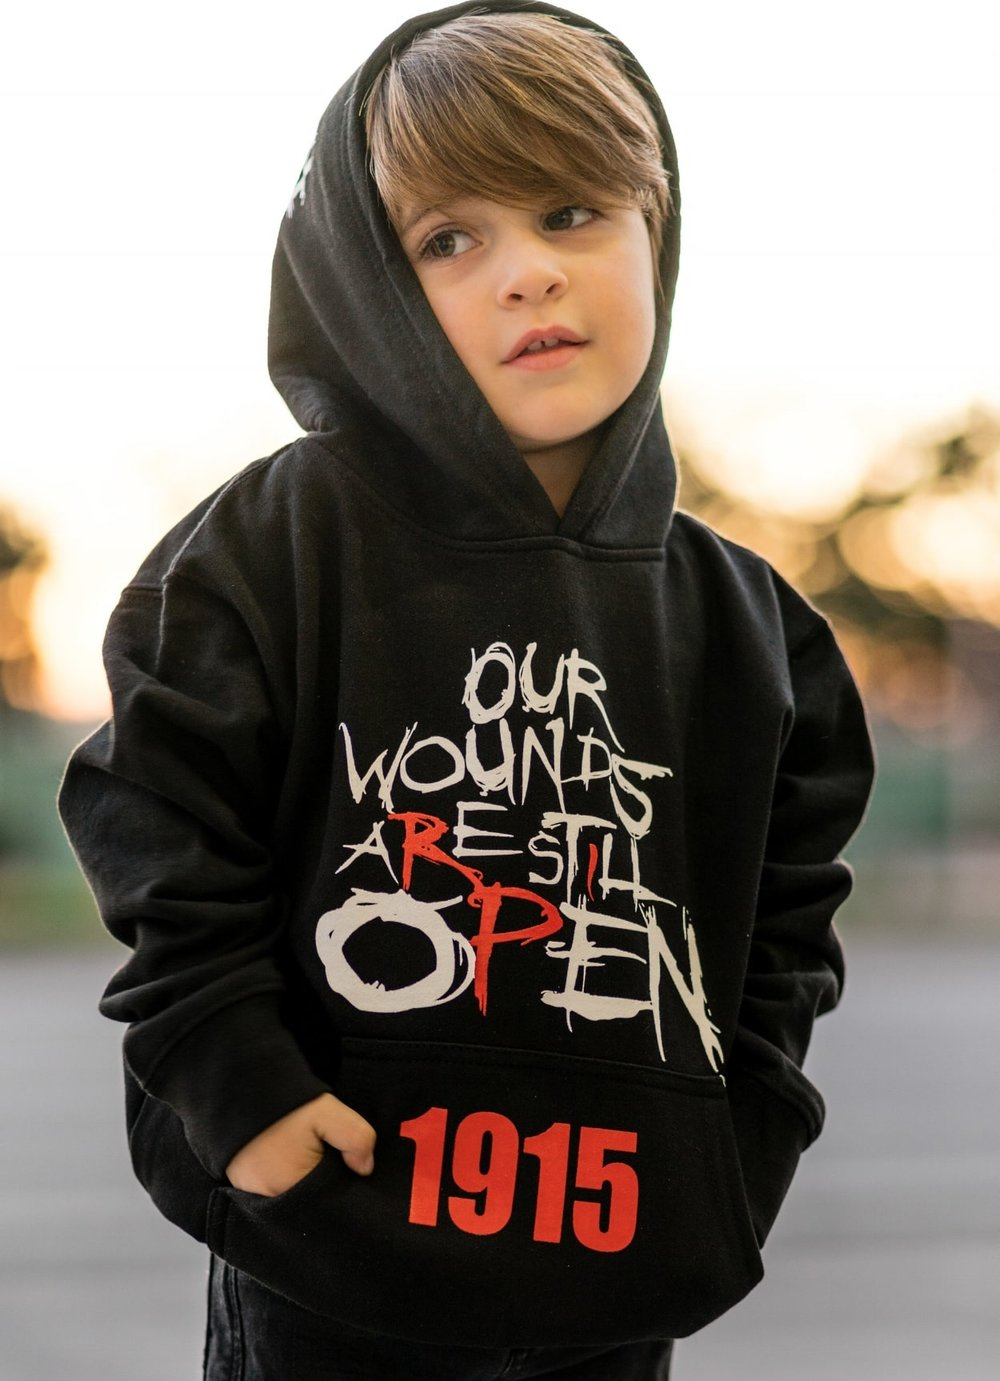 OPEN WOUNDS MISSION - Open Wounds is a 501c non-profit organization that uses fashion, music and social media to educate and empower youth all over the world about crimes against humanity, both current and past.